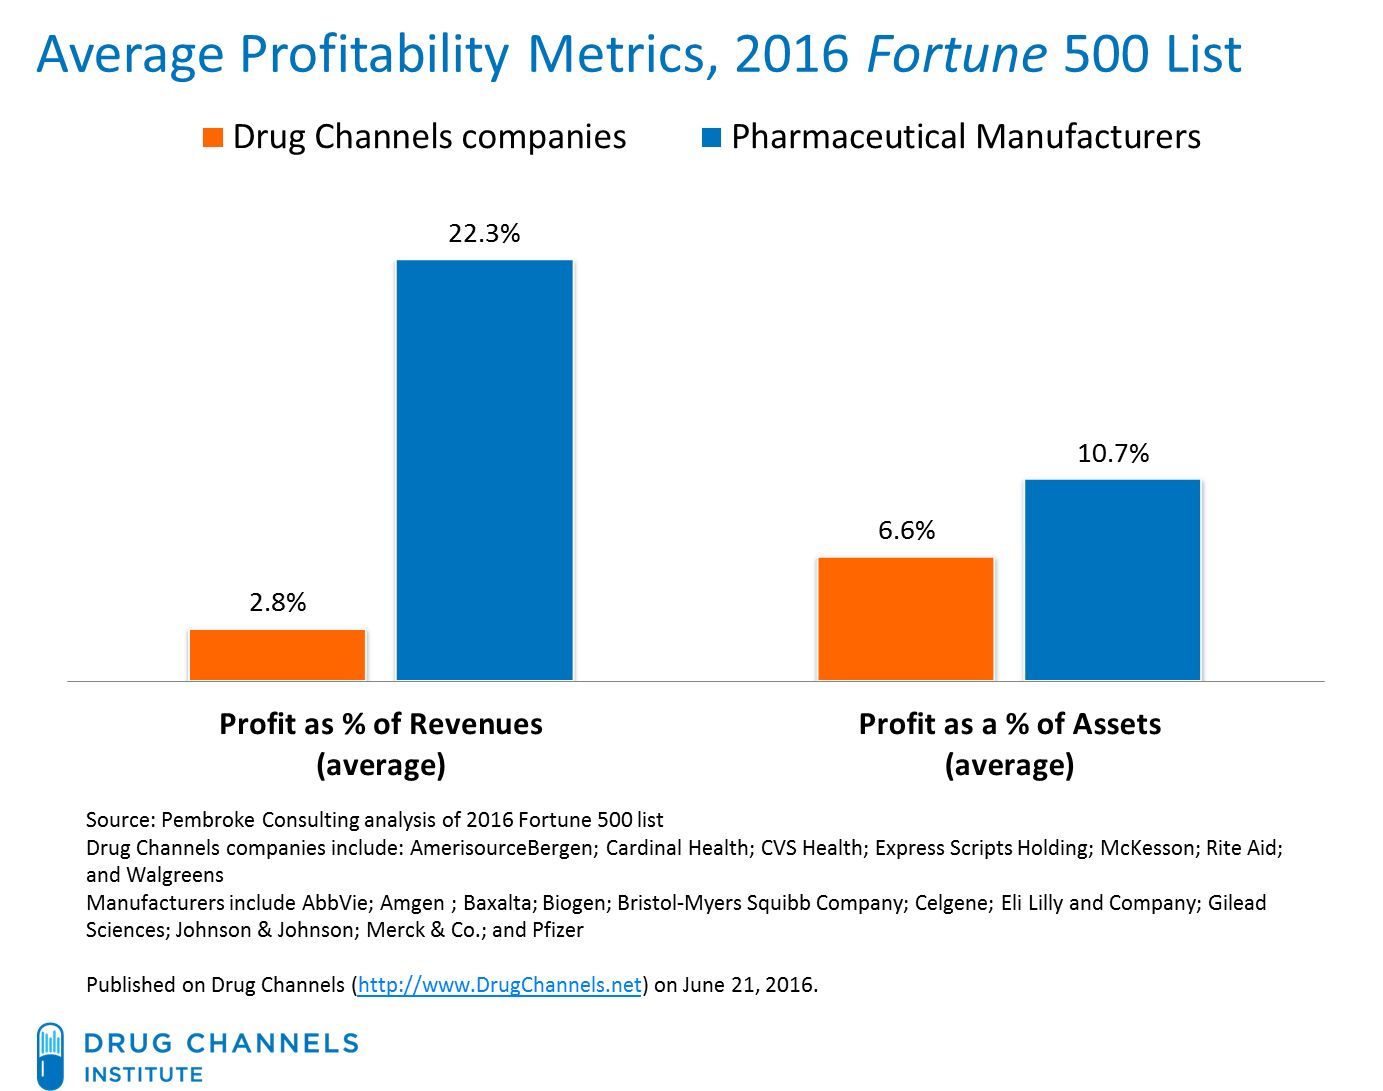 Drug Channels: Profits in the 2016 Fortune 500